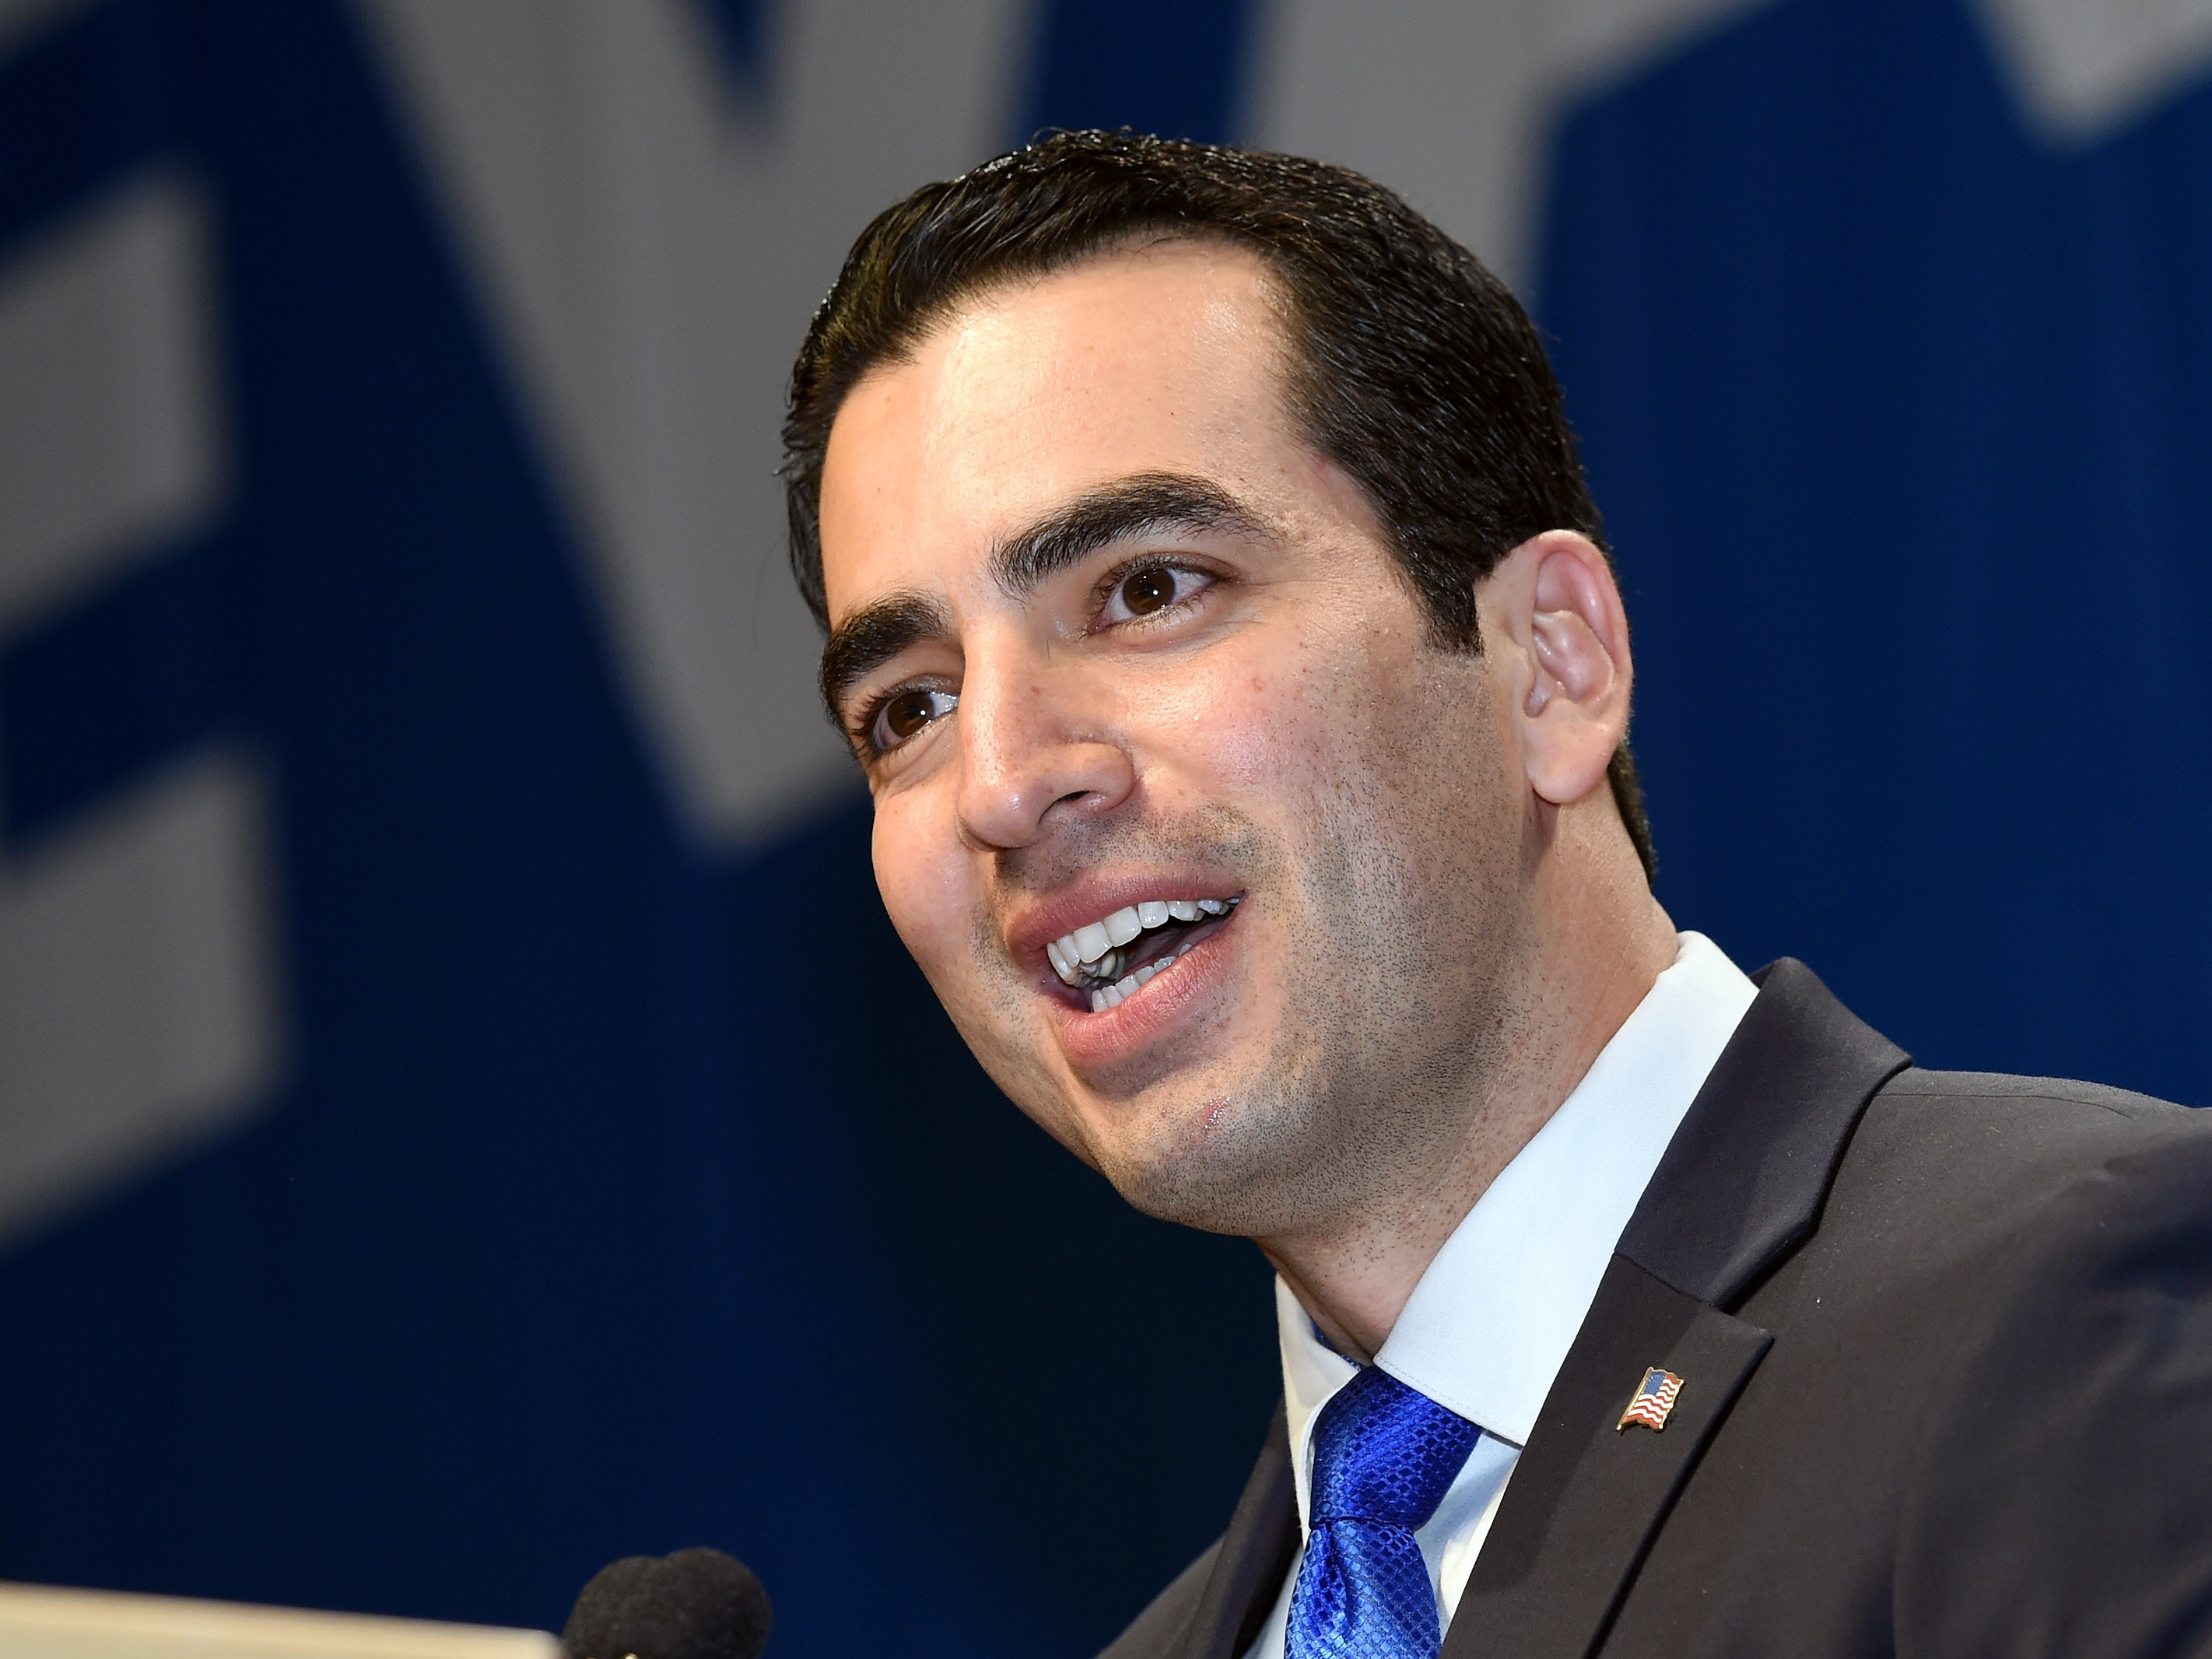 Rep. Kihuen announces he will not seek reelection